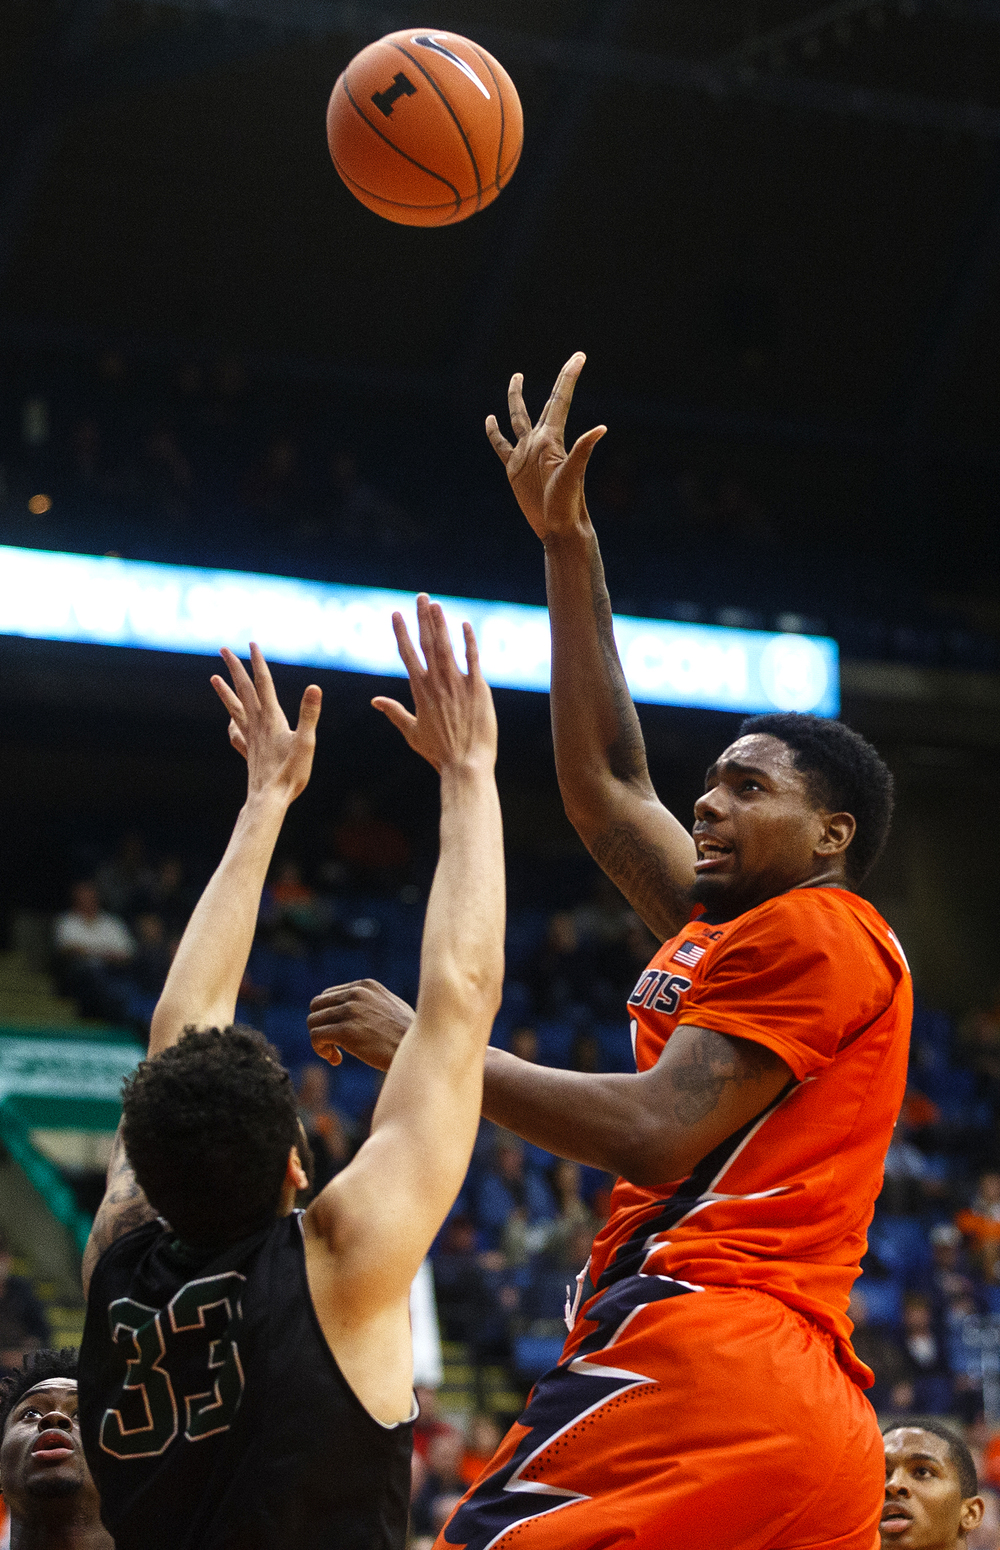 Illinois' Mike Thorne Jr. floats a shot past Chicago State's Jordan Madrid-Andrews at the Praire Capital Convention Center Monday, Nov. 23, 2015. Ted Schurter/The State Journal-Register